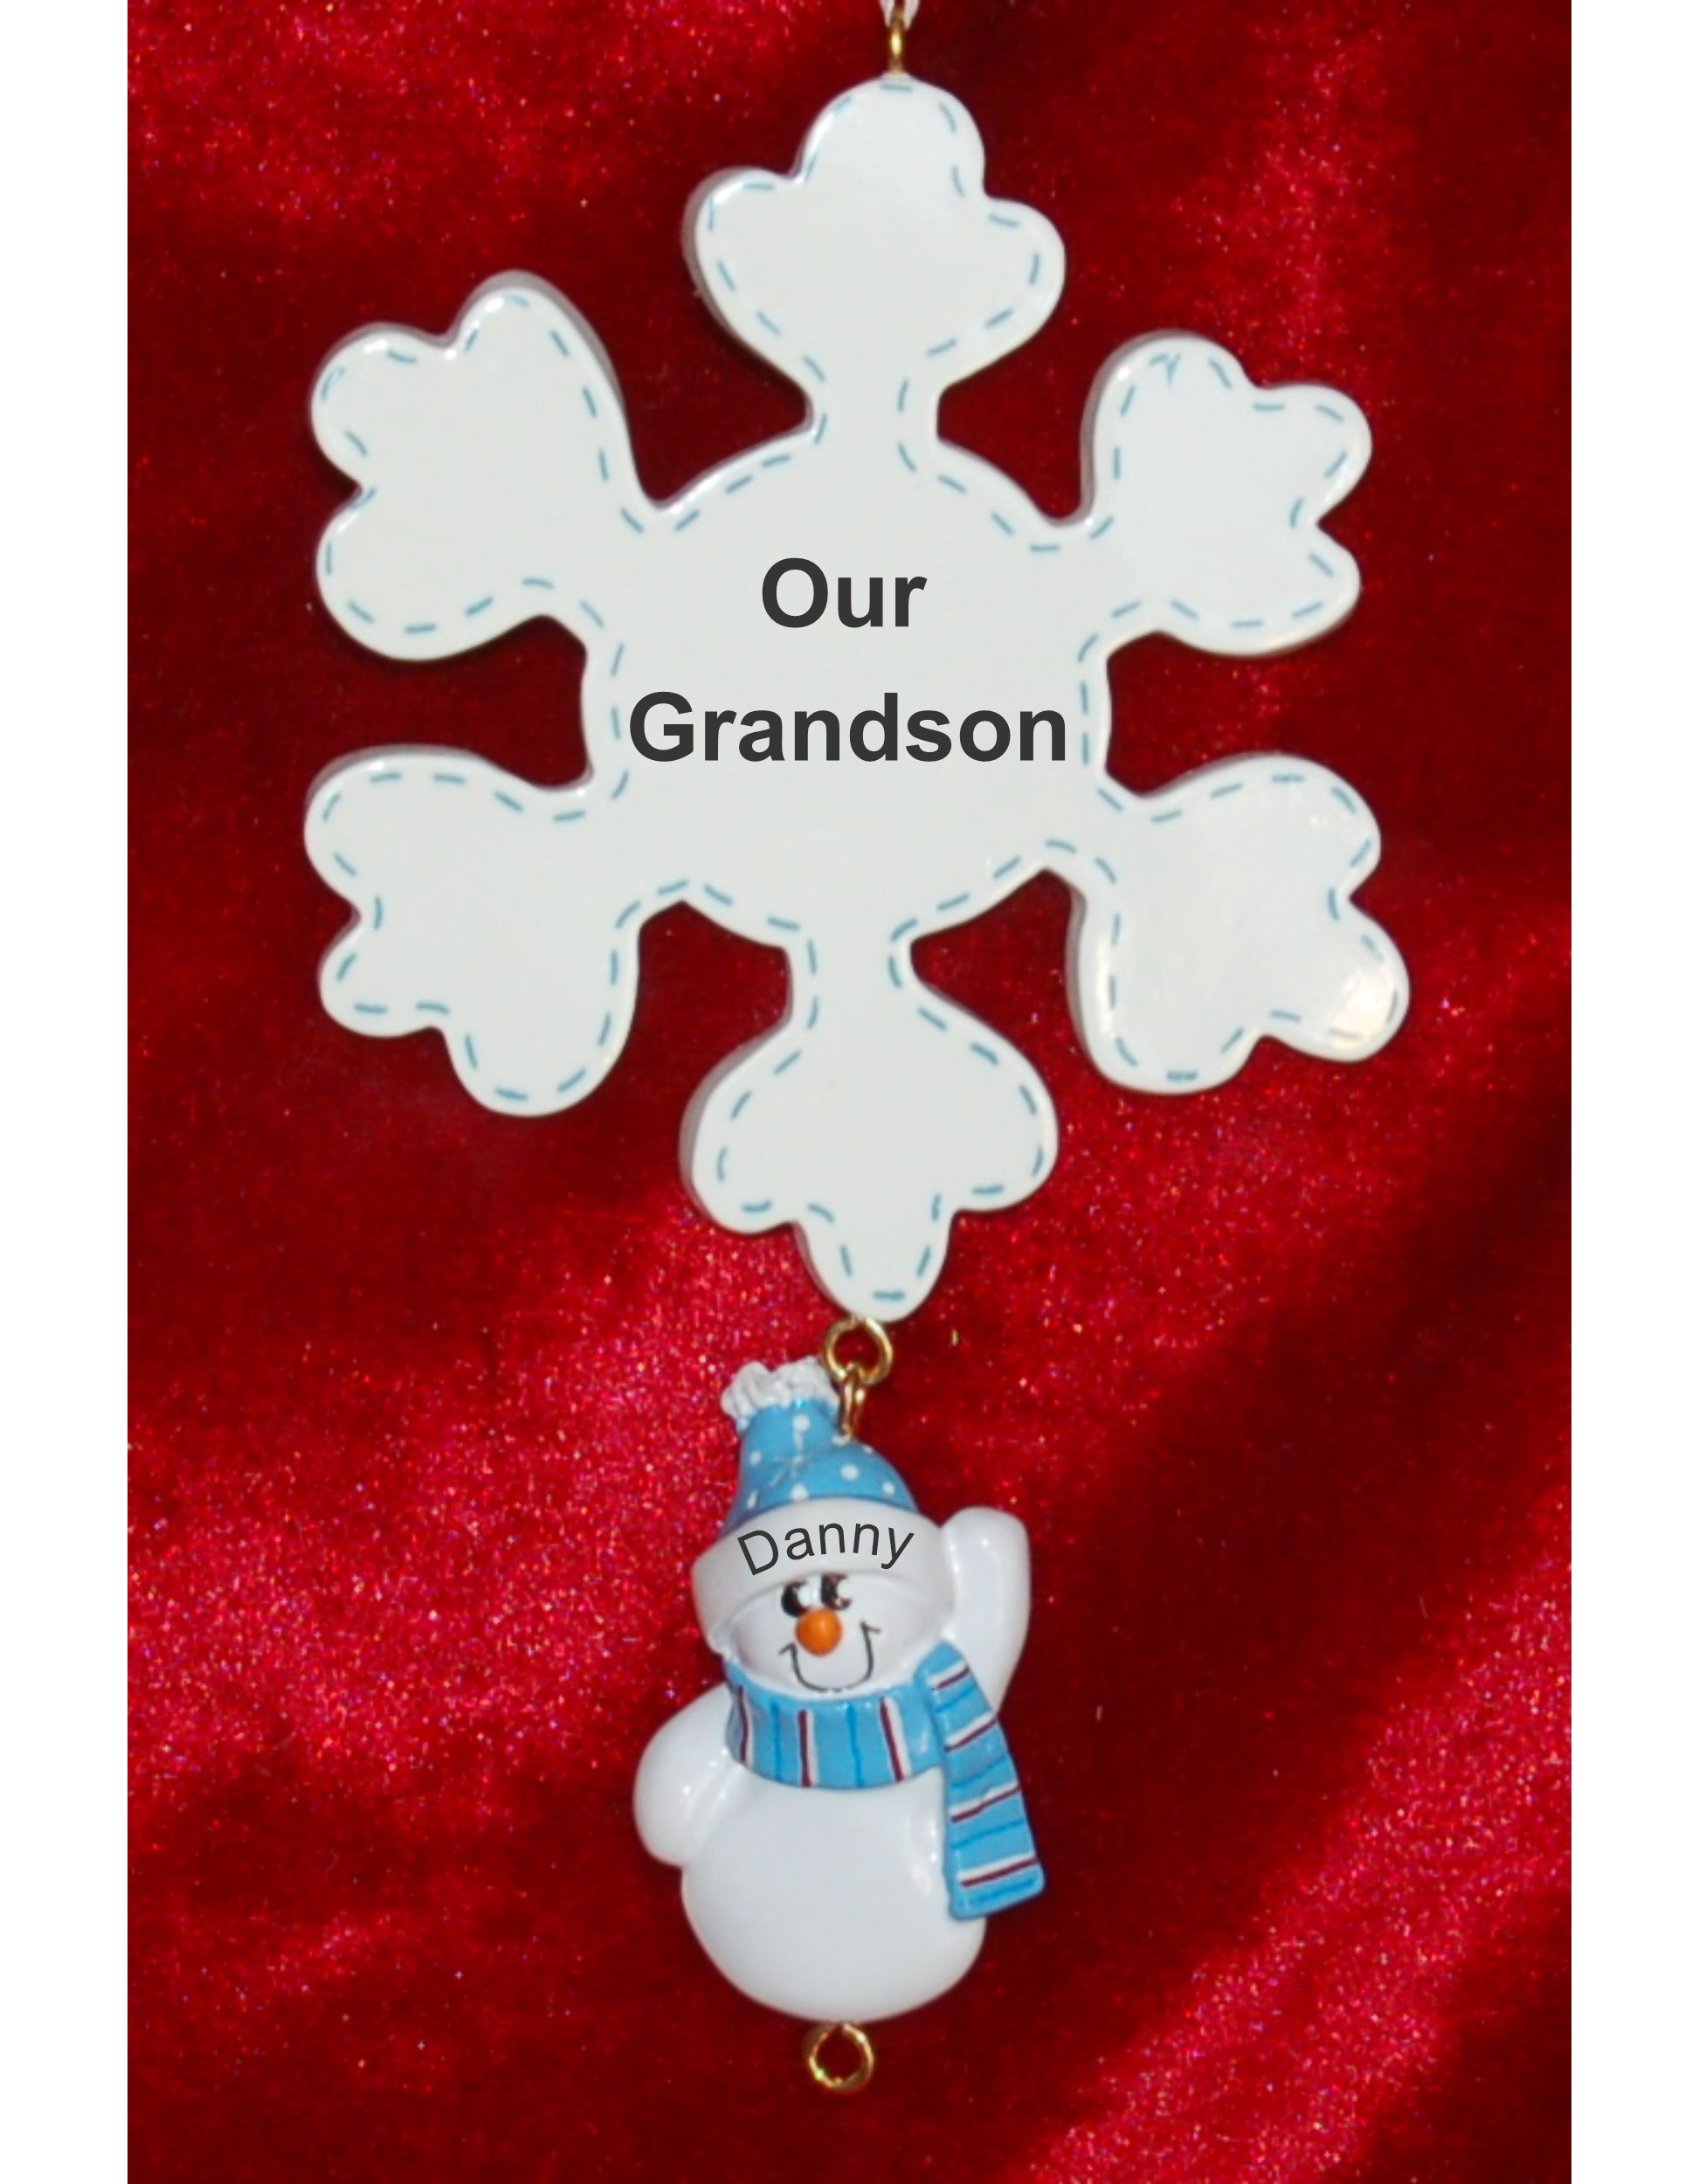 Personalized Grandparents Christmas Ornament Snowflake 1 Grandchild by Russell Rhodes